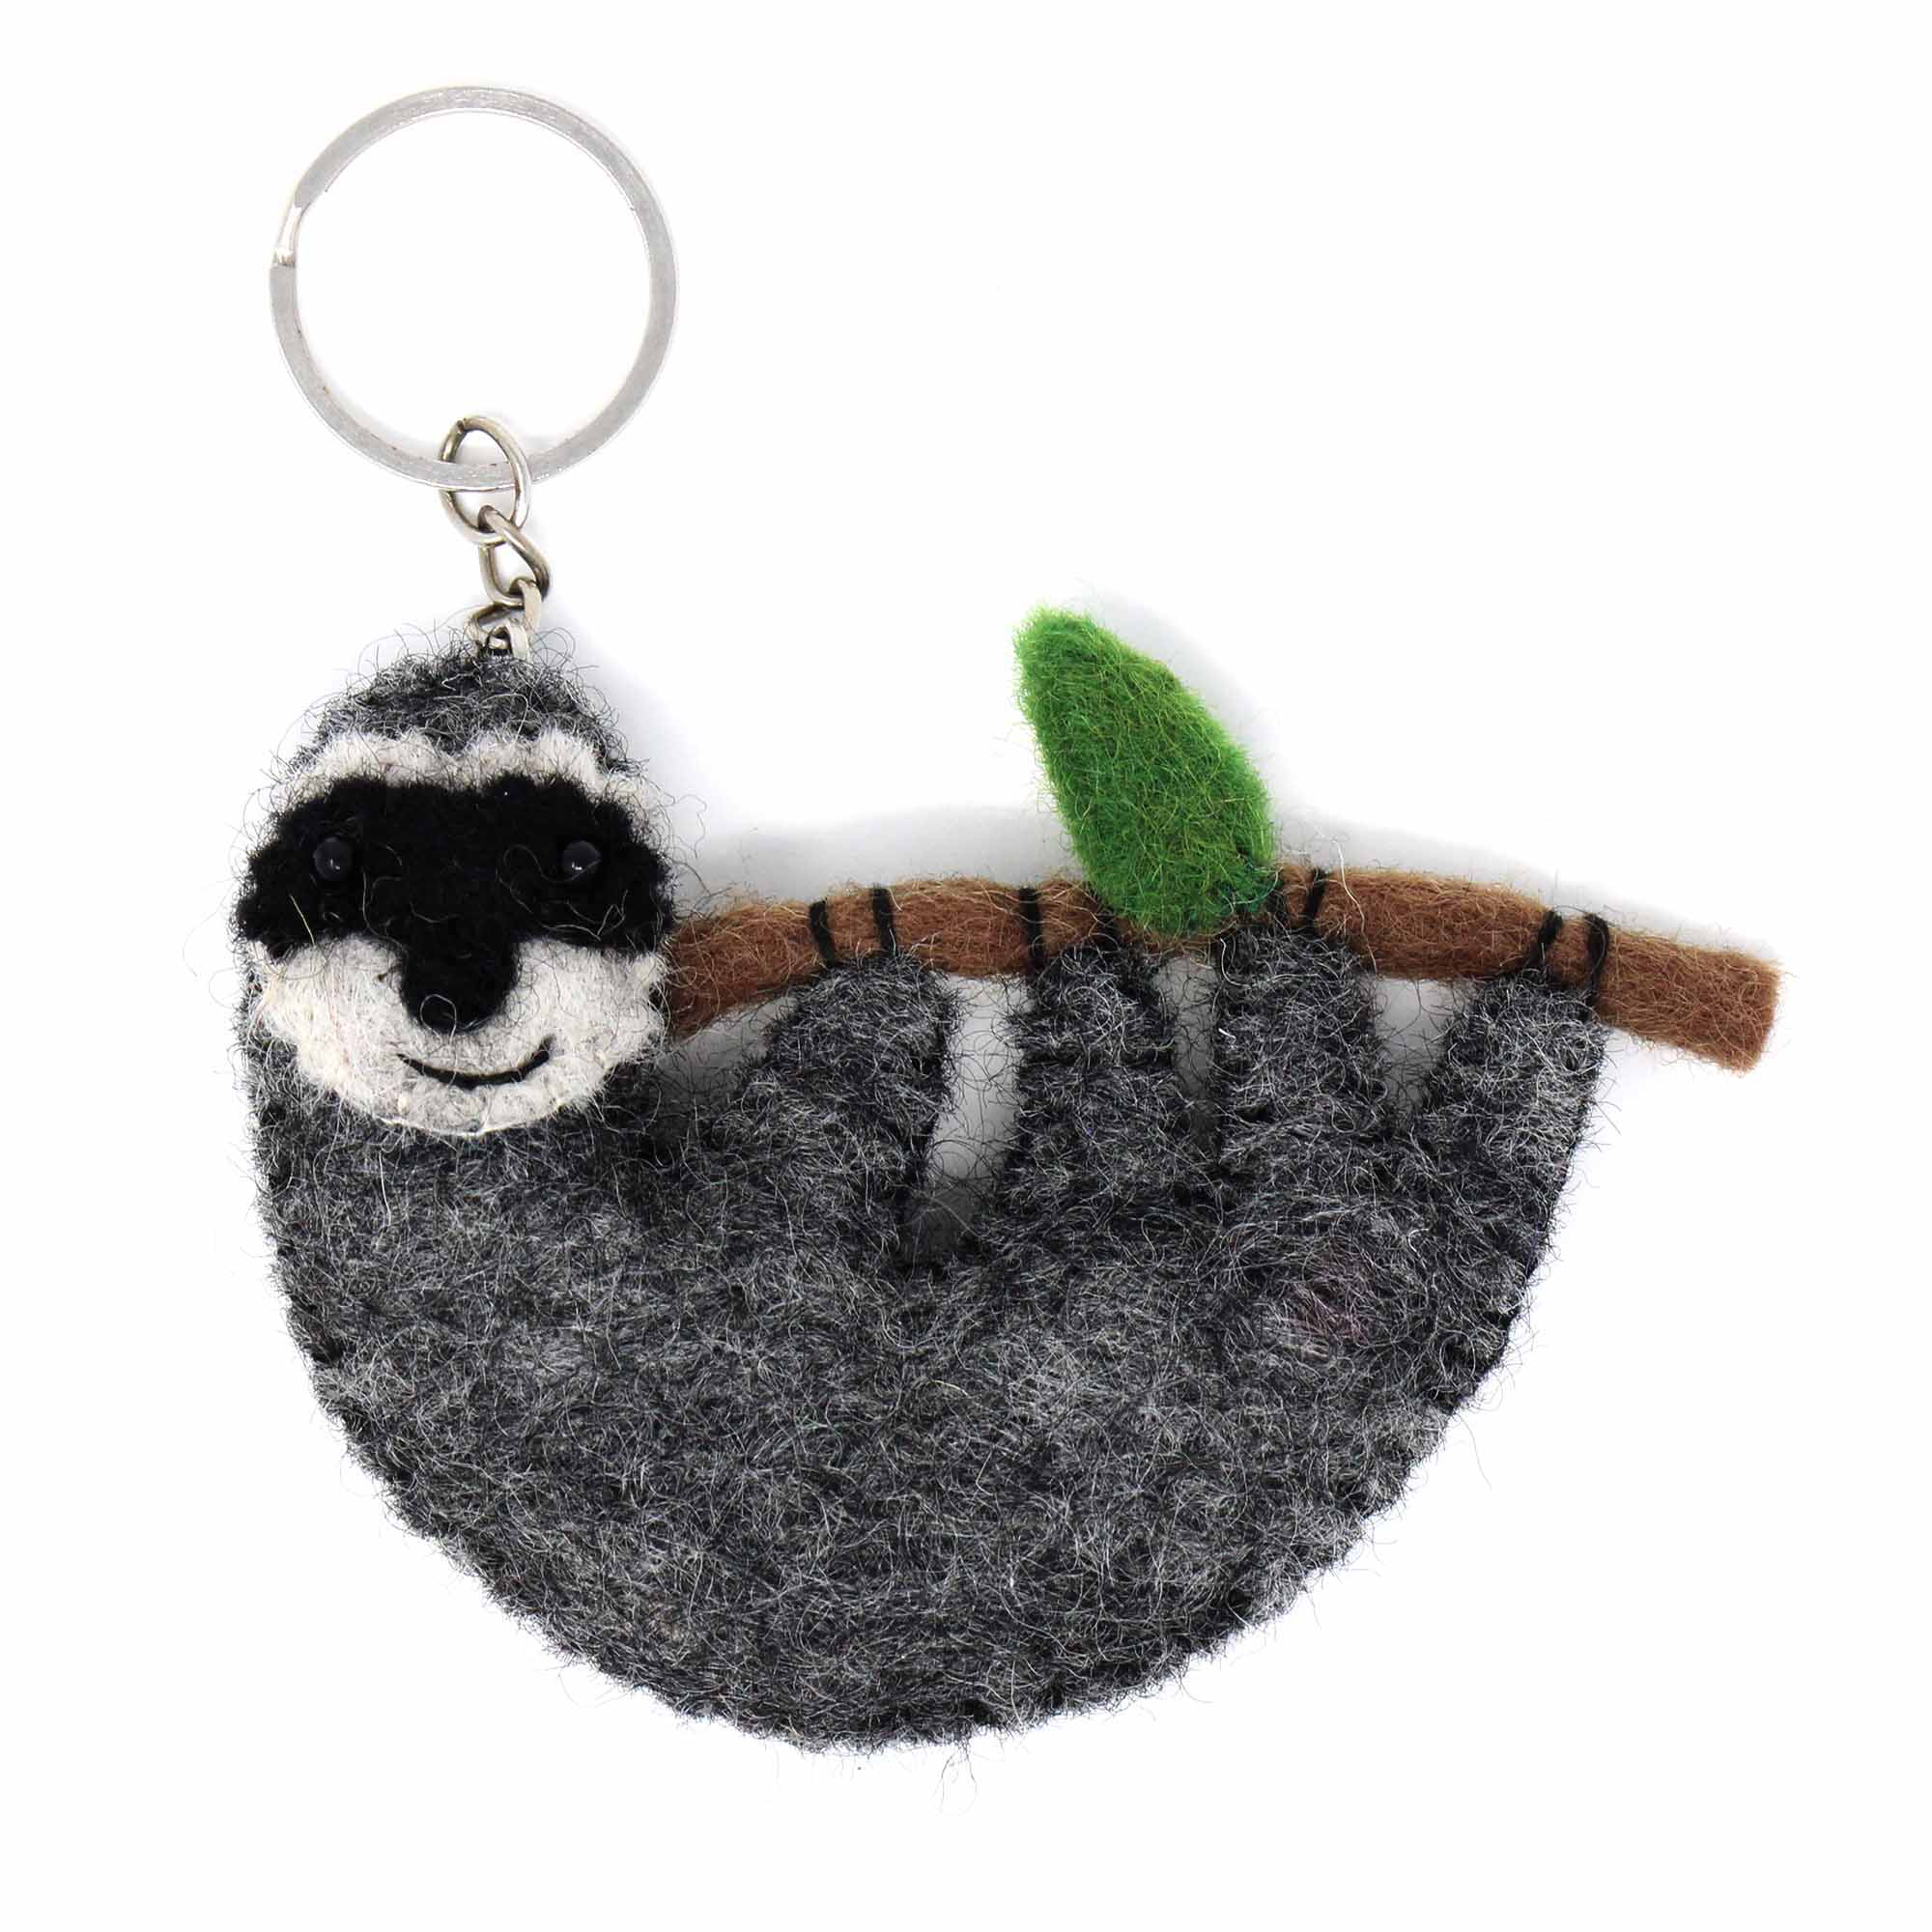 Hand Crafted Felt from Nepal: Key Chain, Sloth